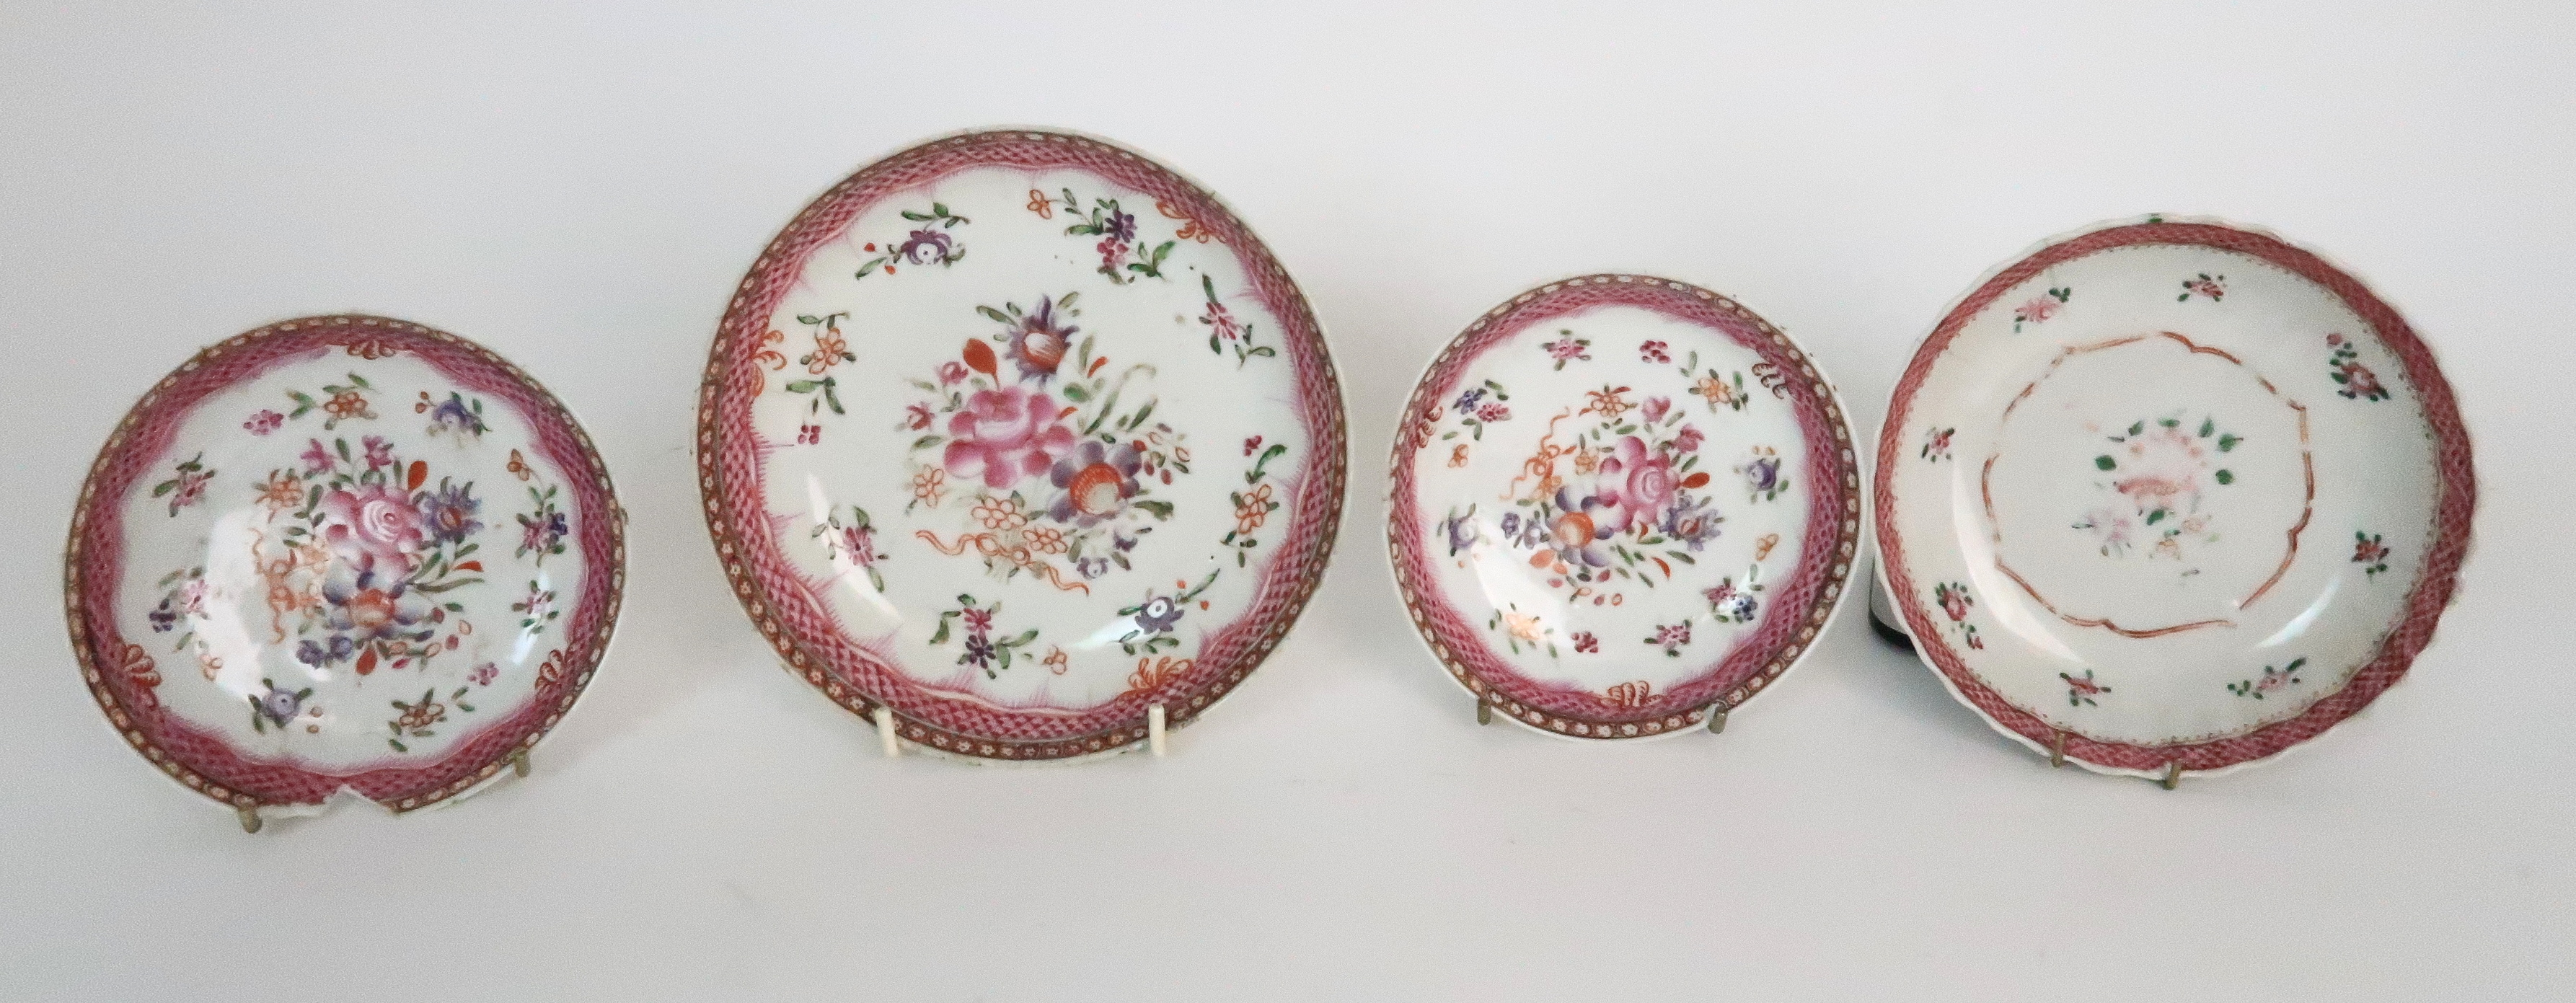 A COLLECTION OF TEA BOWLS AND SAUCERS each with pink scale and floral decoration including New Hall; - Image 2 of 12